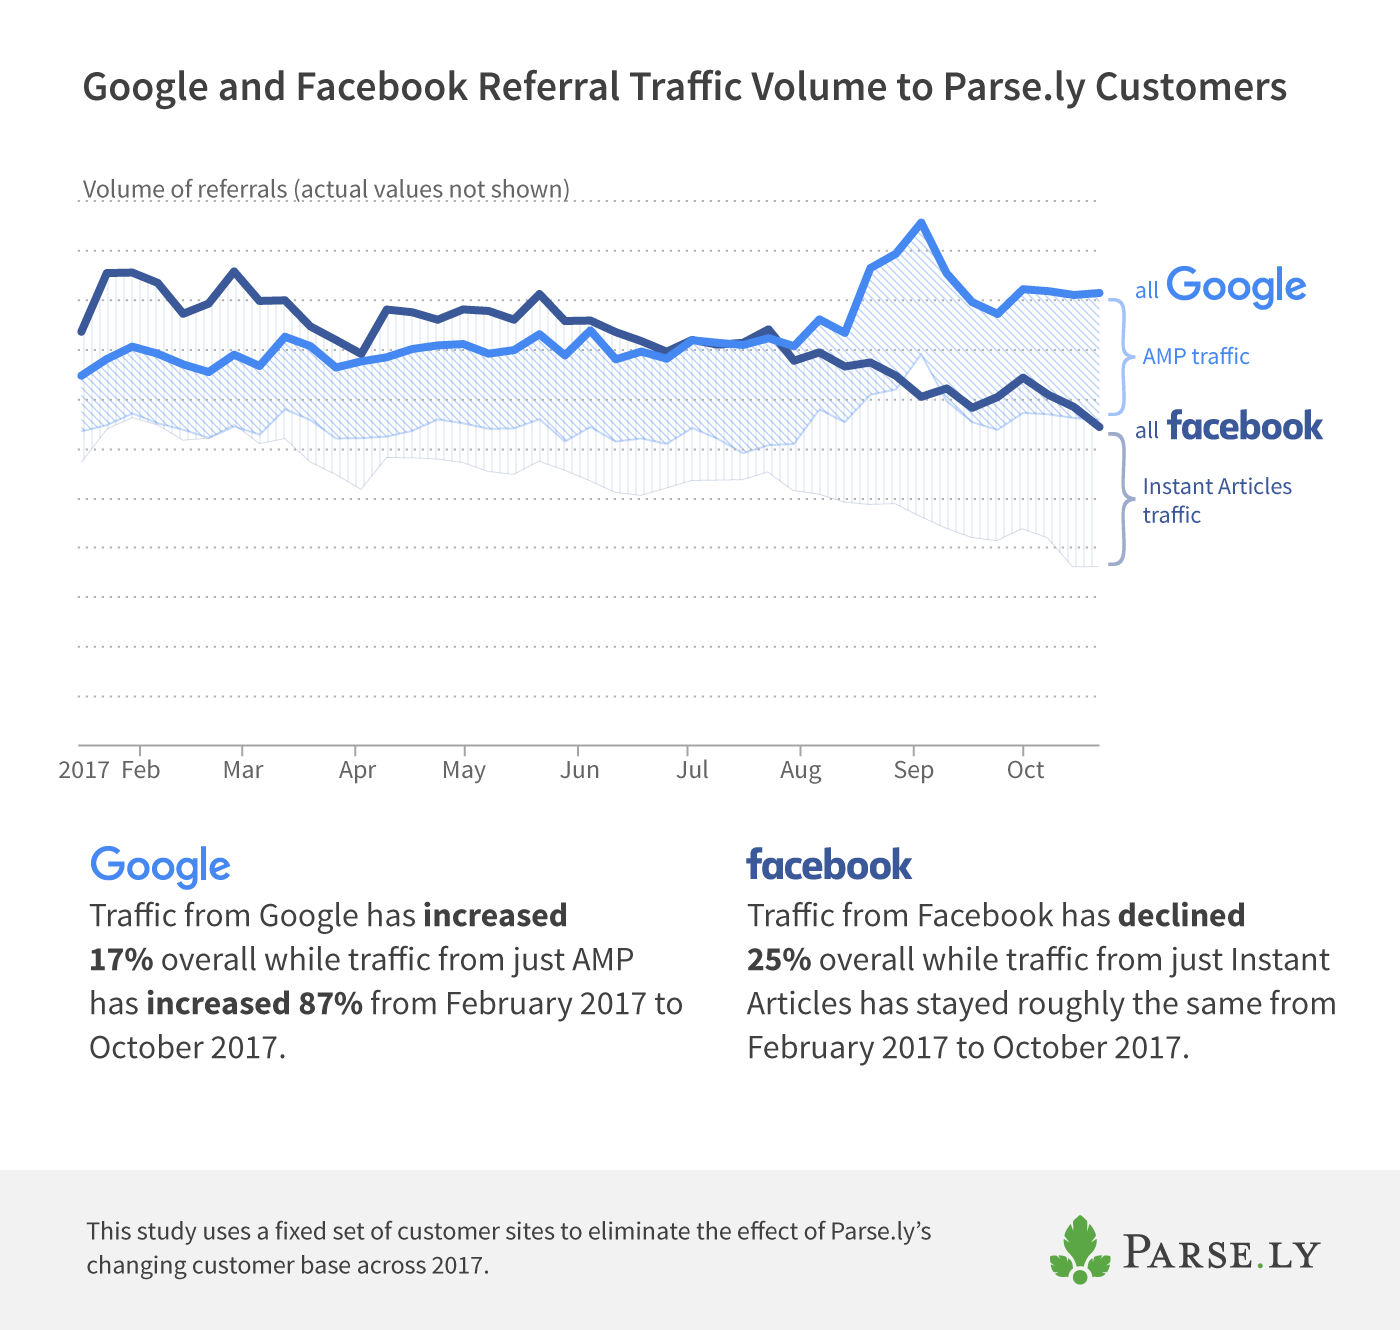 Google and Facebook referral traffic volume